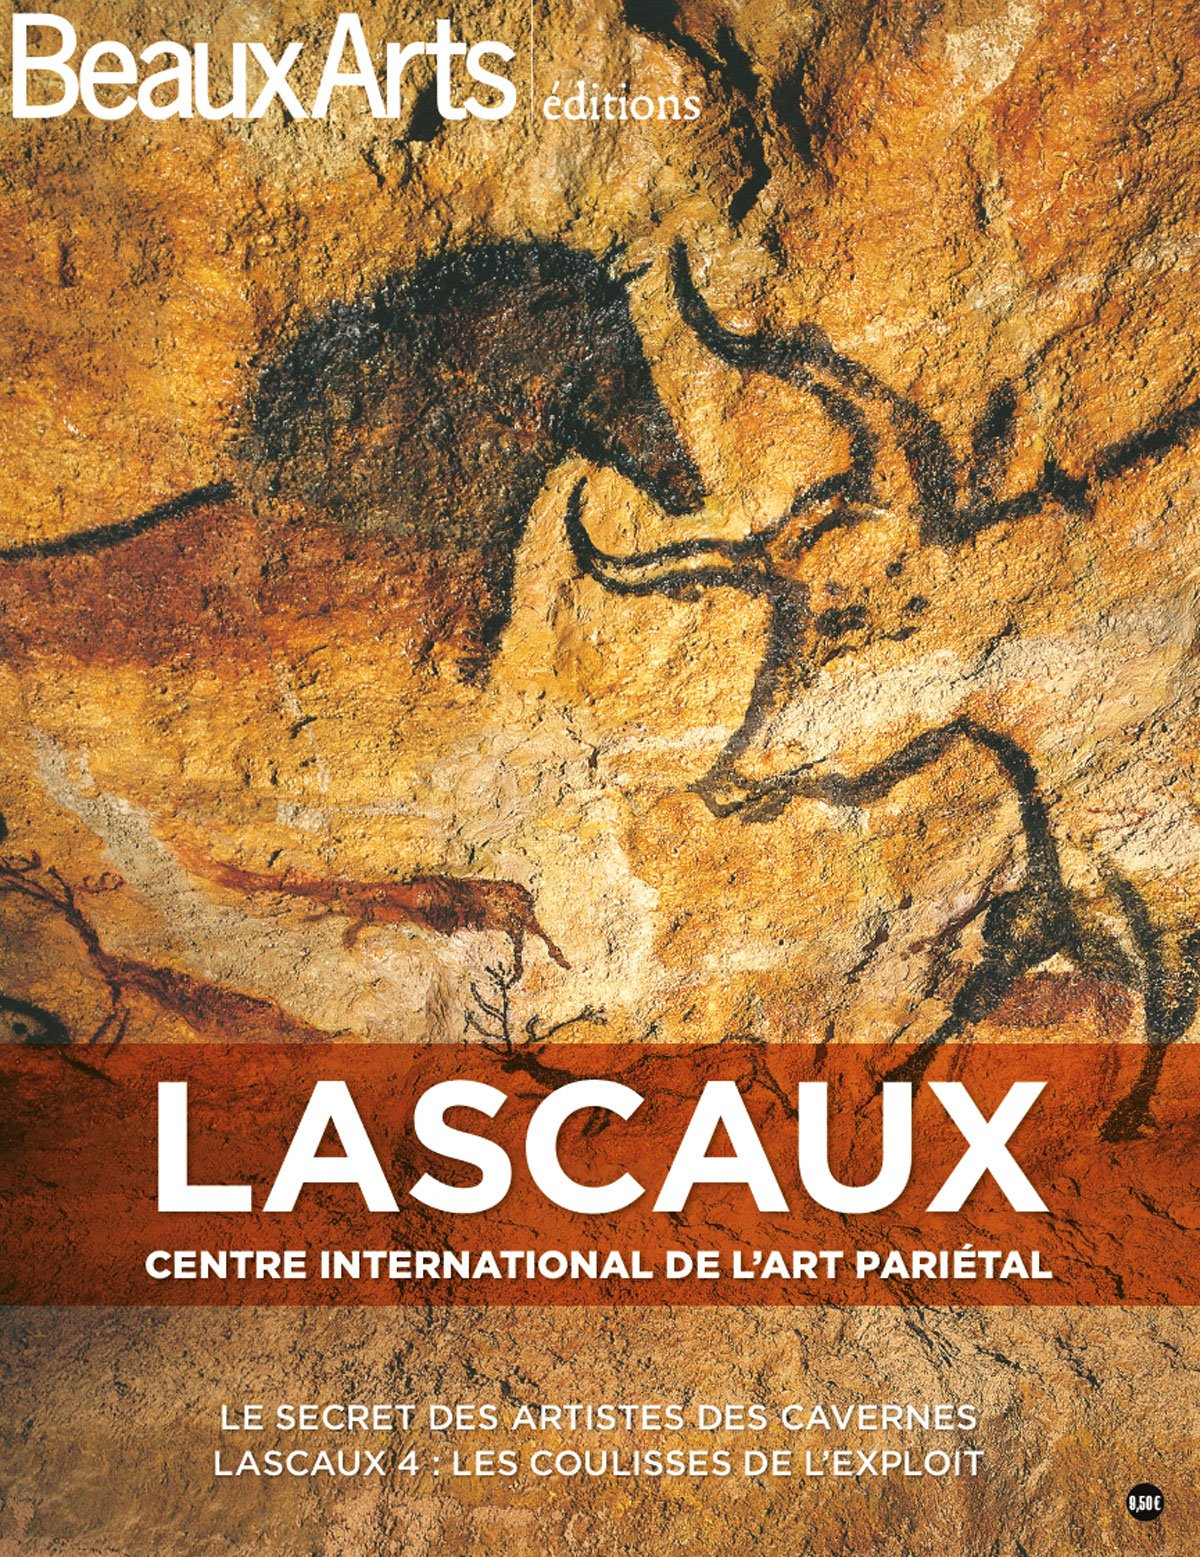 Lascaux, centre International de l'art parietal, Beaux Arts editions